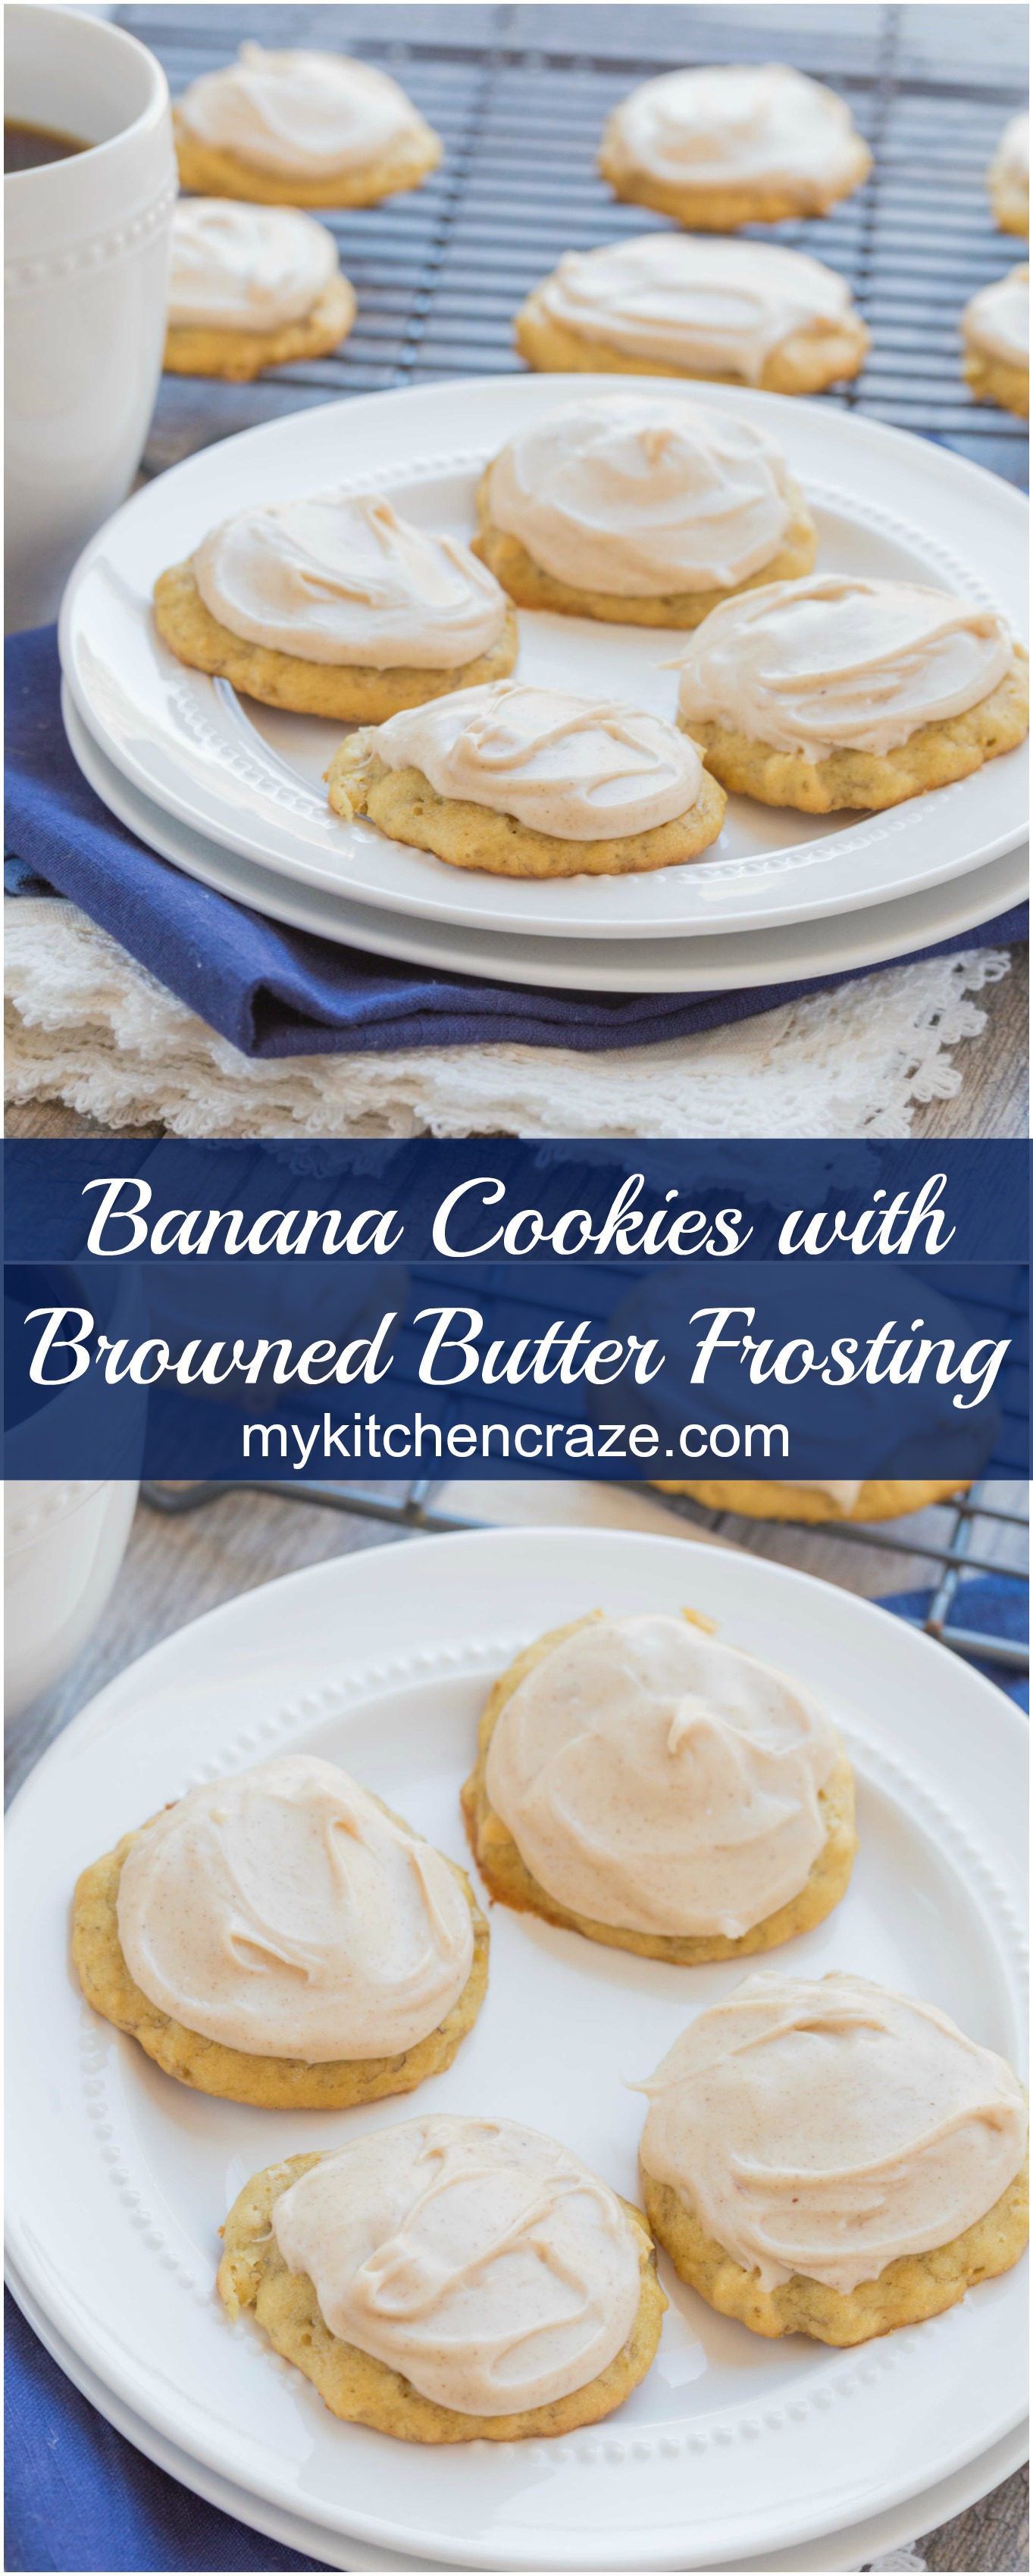 Banana Cookies with Browned Butter Frosting ~ mykitchencraze.com ~ Use up those browned bananas with this easy and delicious Banana Cookie recipe. Top them with a creamy and yummy Browned Butter Frosting. Everyone will love these cookies!